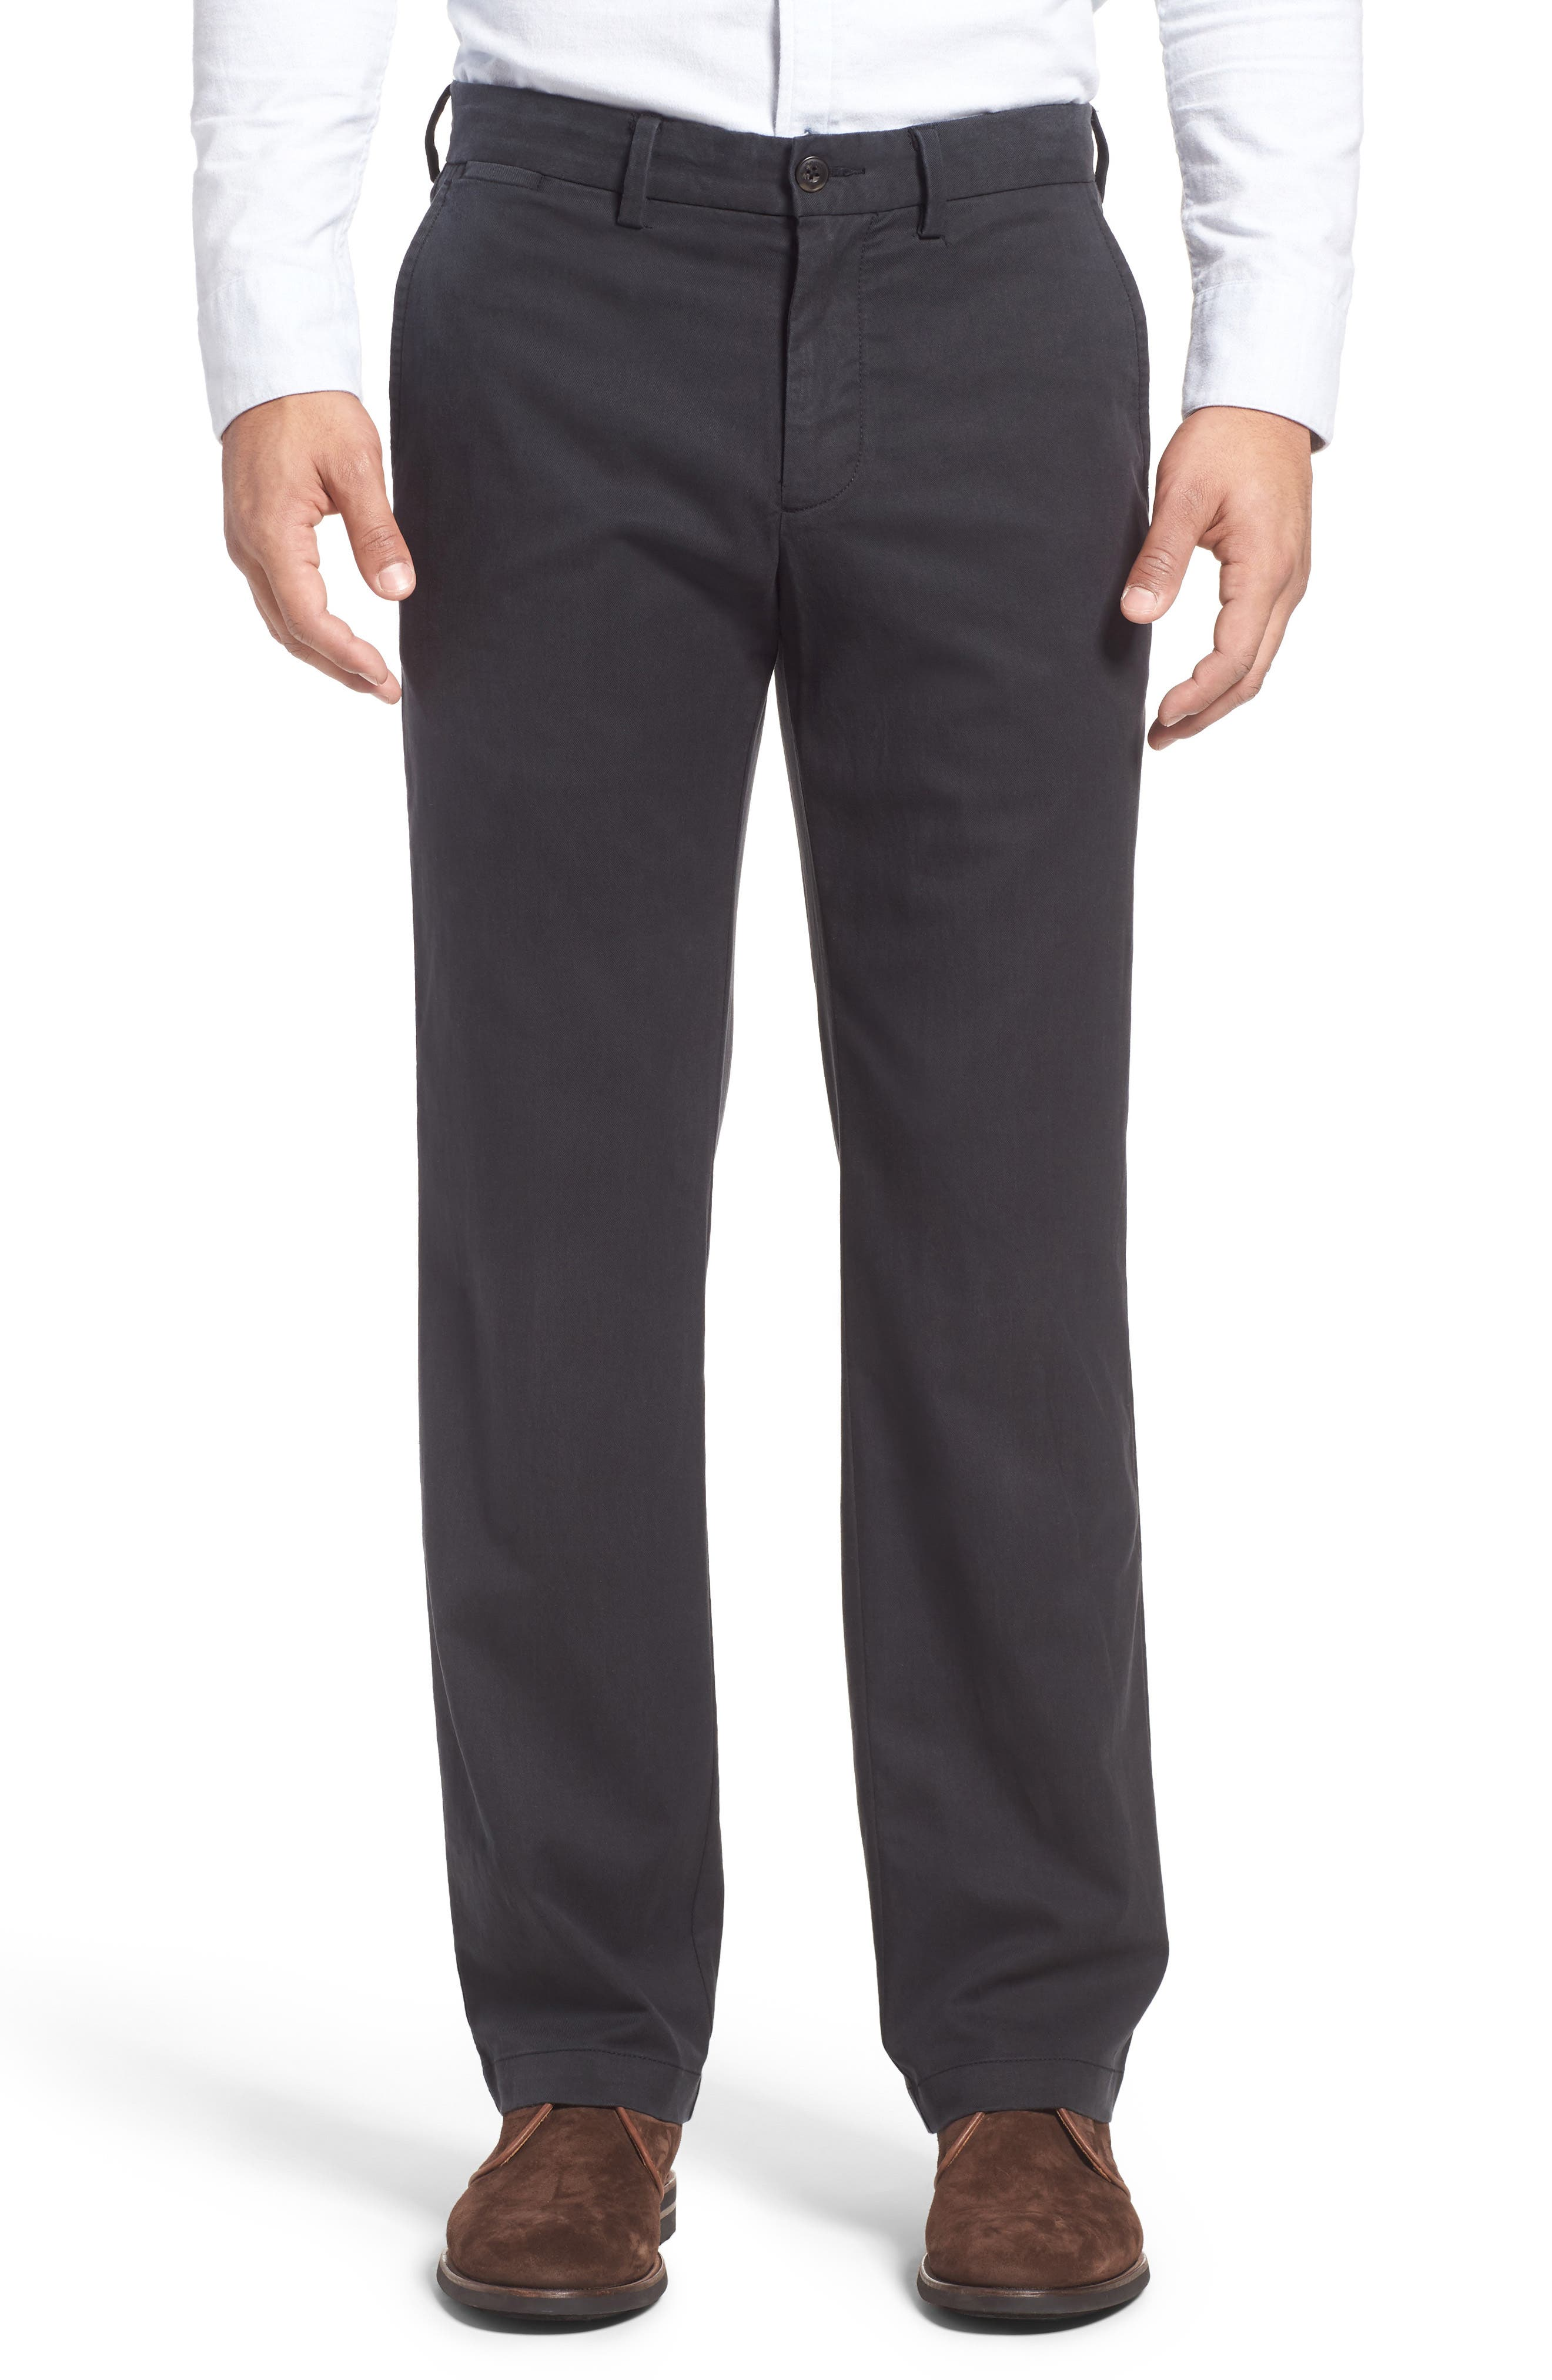 Offshore Flat Front Pants,                             Main thumbnail 1, color,                             001